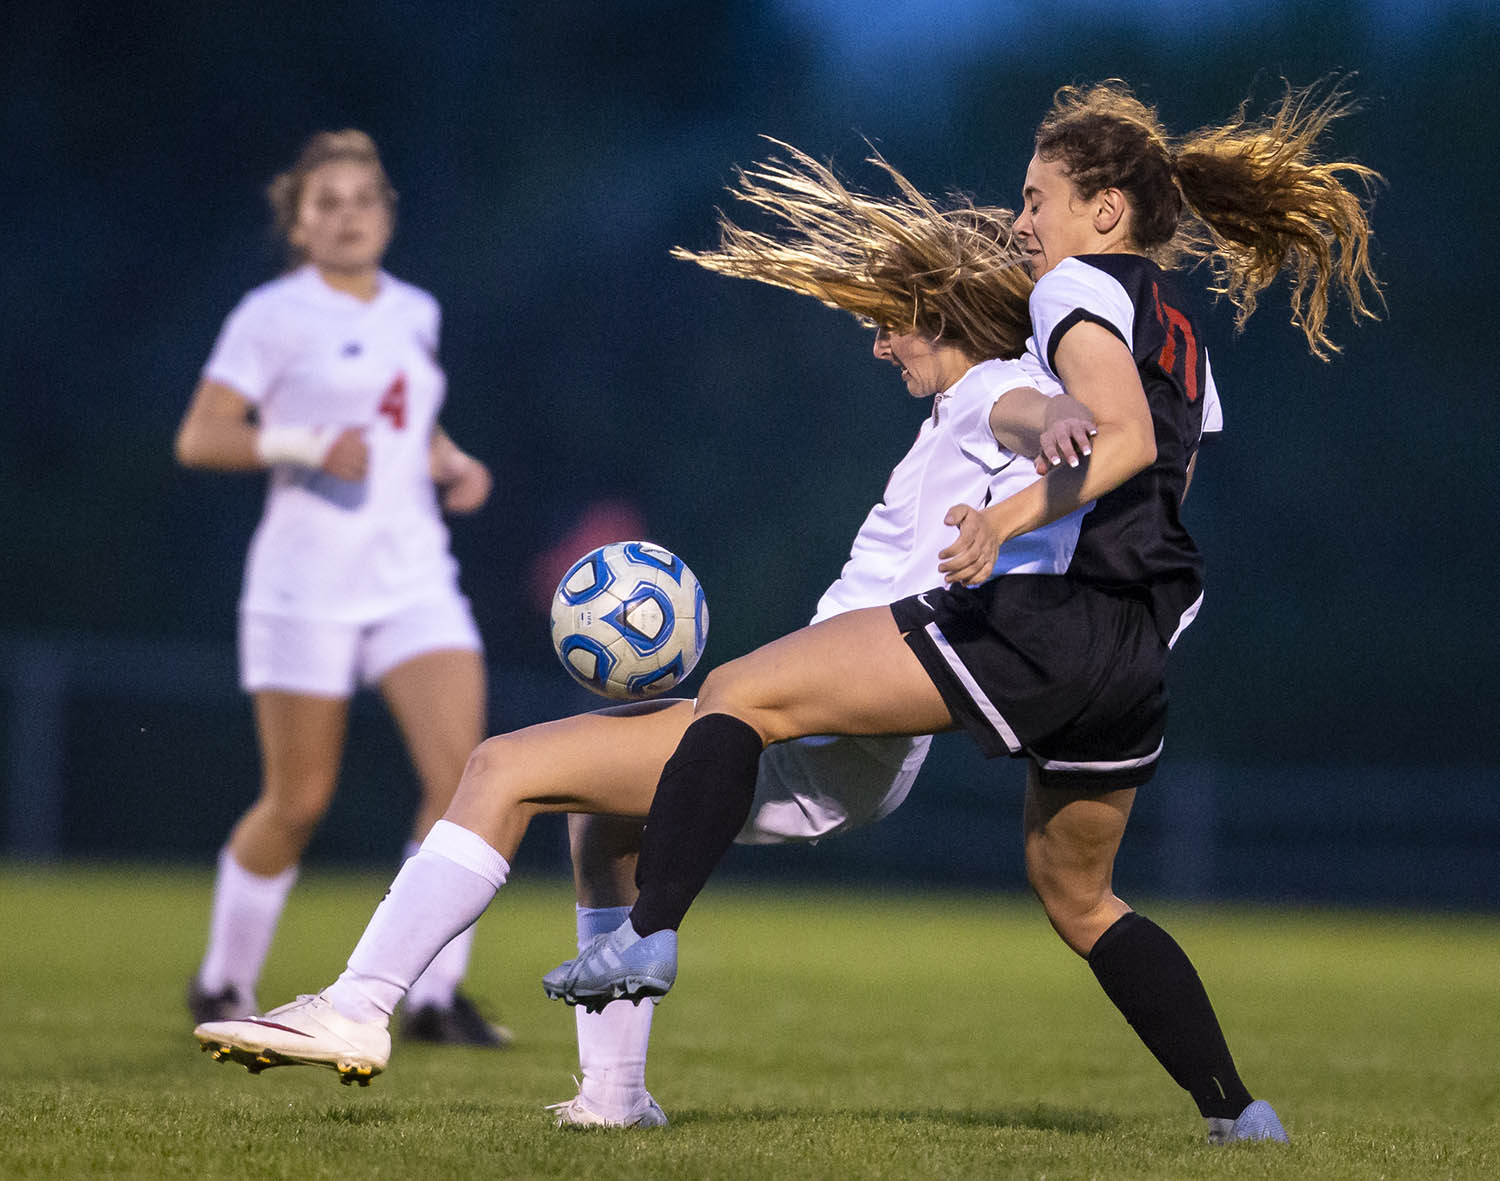 Glenwood's Darby Dixon (12) collides with Springfield's Emelie Lafrenz (10) as they go up for a ball out fo the air in the second half at Lee Field, Monday, April 29, 2019, in Springfield, Ill. [Justin L. Fowler/The State Journal-Register]